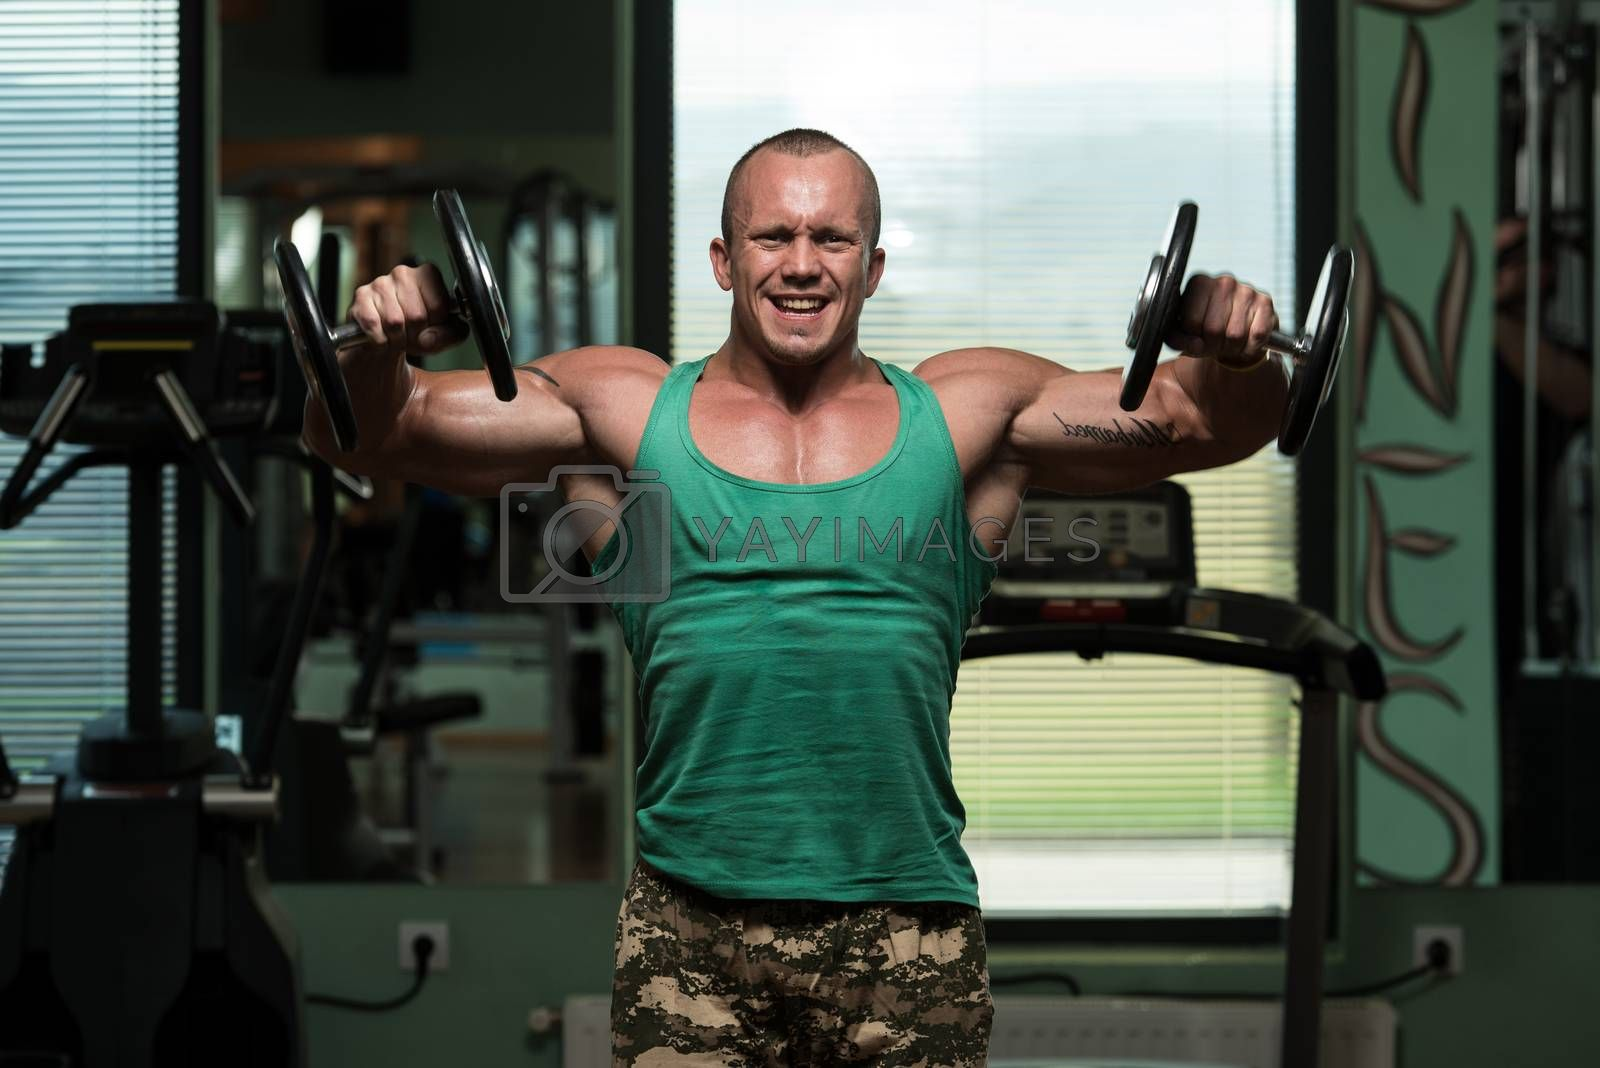 Royalty free image of Bodybuilding Shoulder Exercise With Dumbbells by JalePhoto